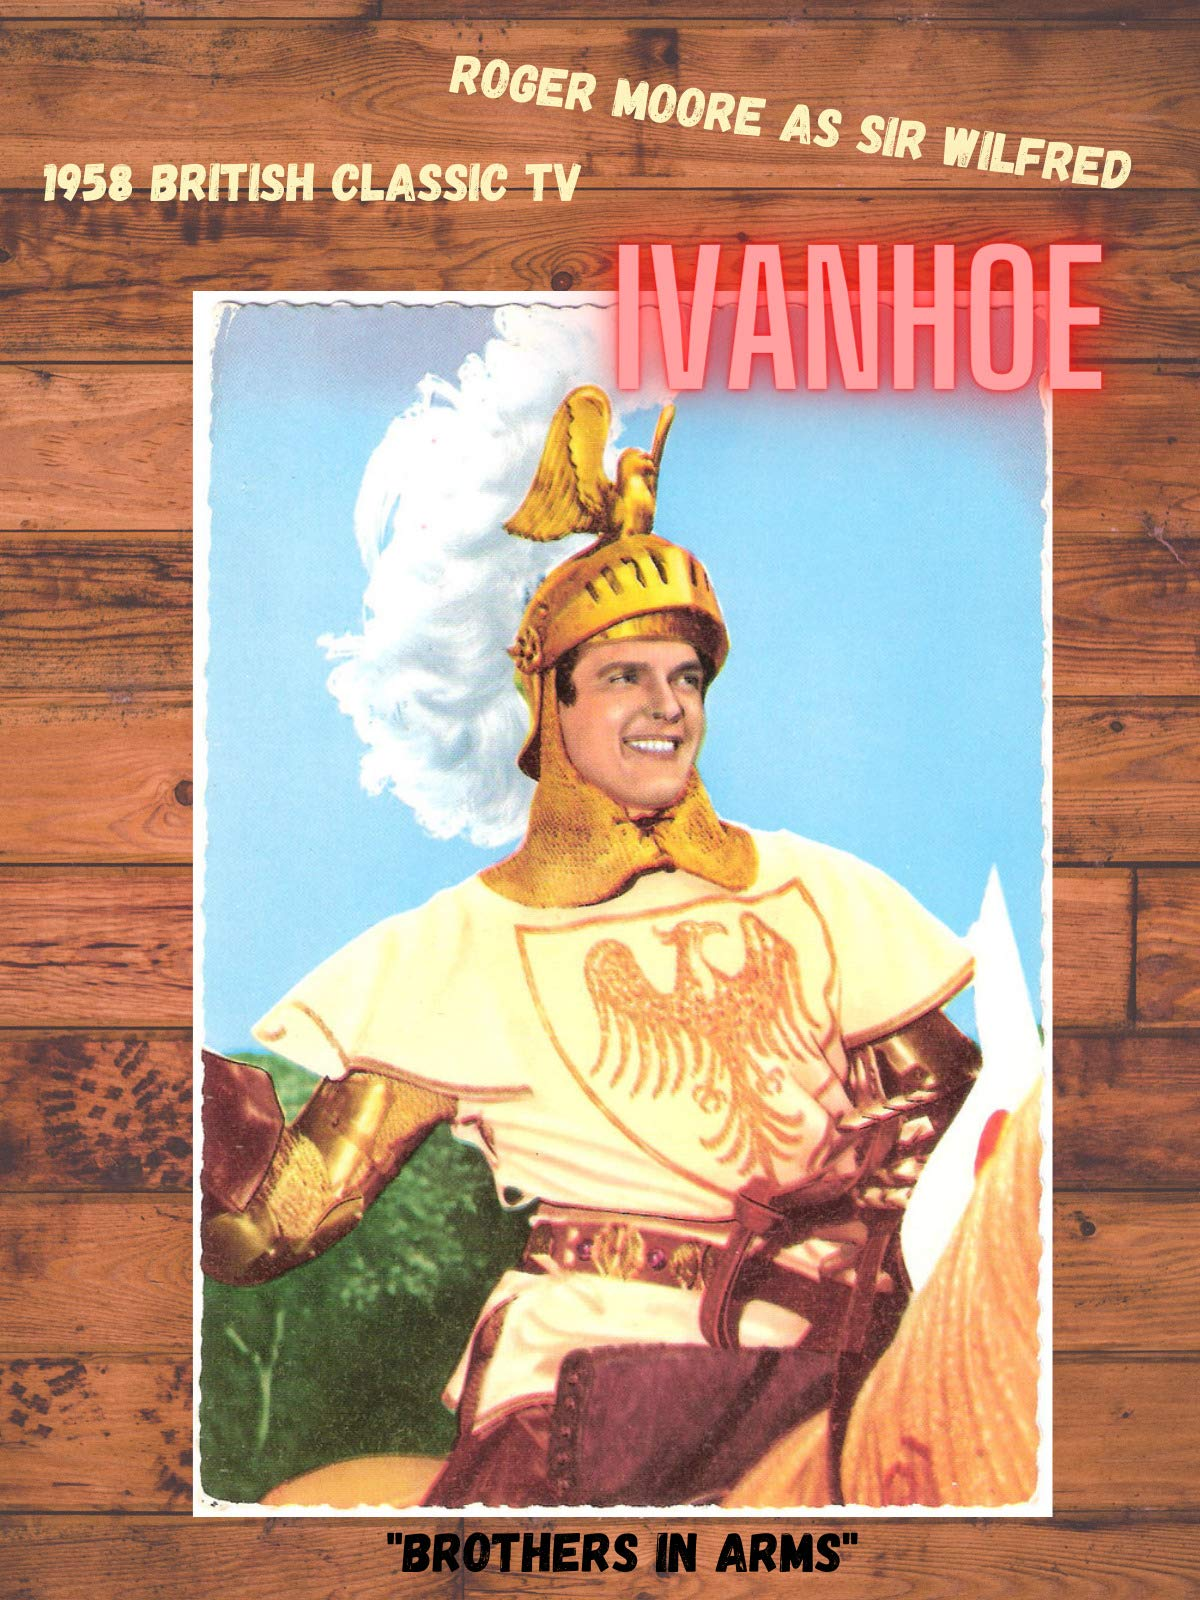 British 1958 TV Series Ivanhoe Brothers in Arms episode starring Roger Moore